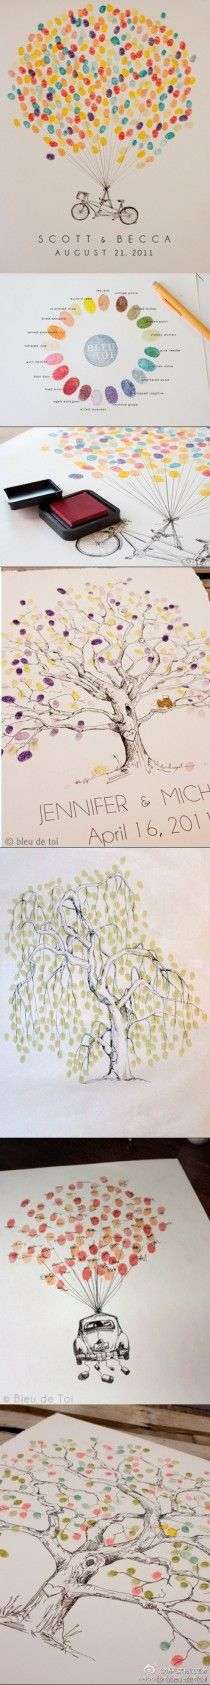 Creative Wedding Fingerprint Tree Alternative Wedding Guestbook Ideas | Farkli Dugun Ani Defteri Fikirleri